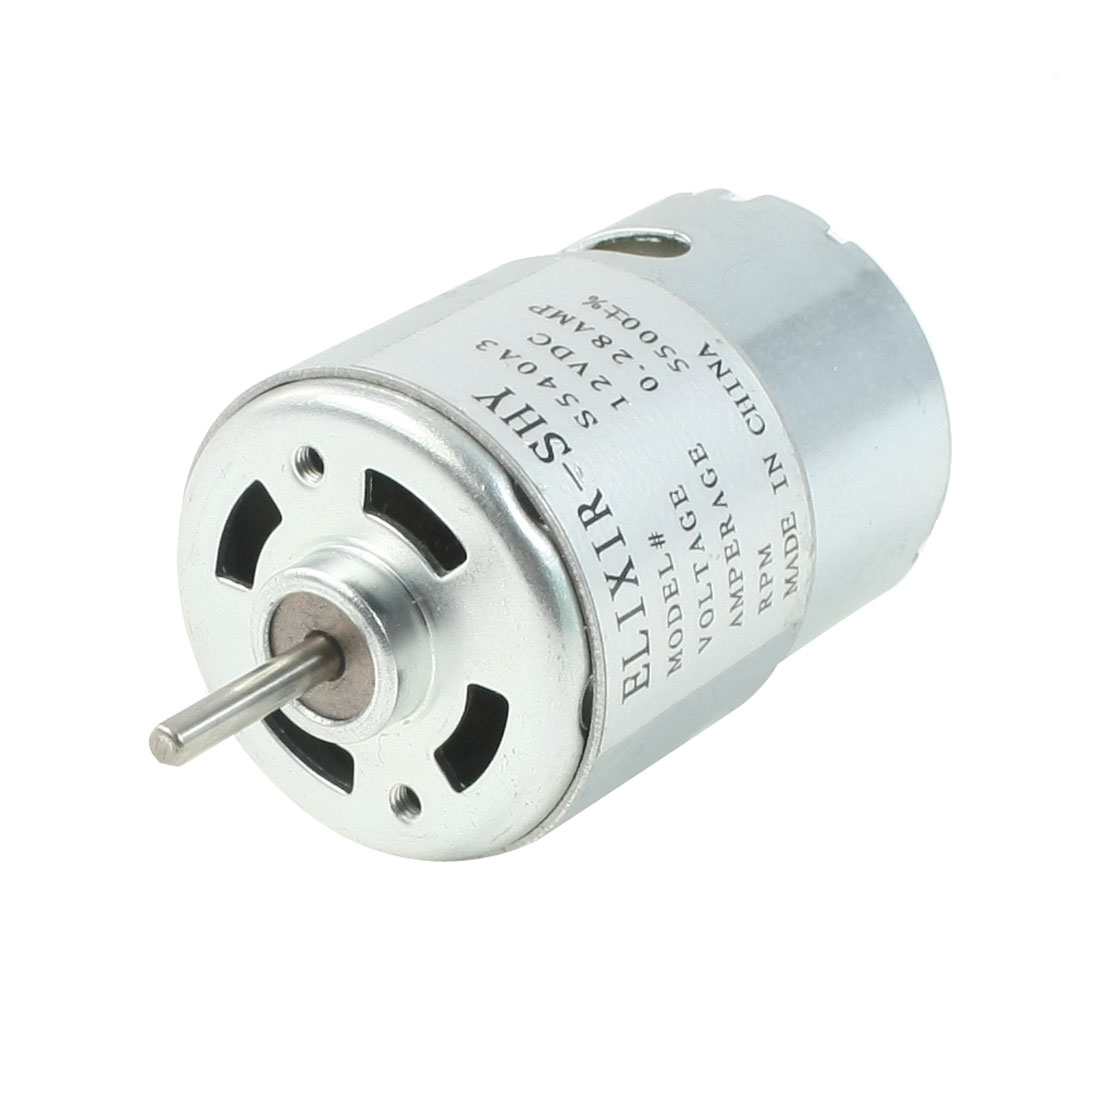 DC 12V 0.28A 5500RPM High Torque Cylinder Electric DC Motor